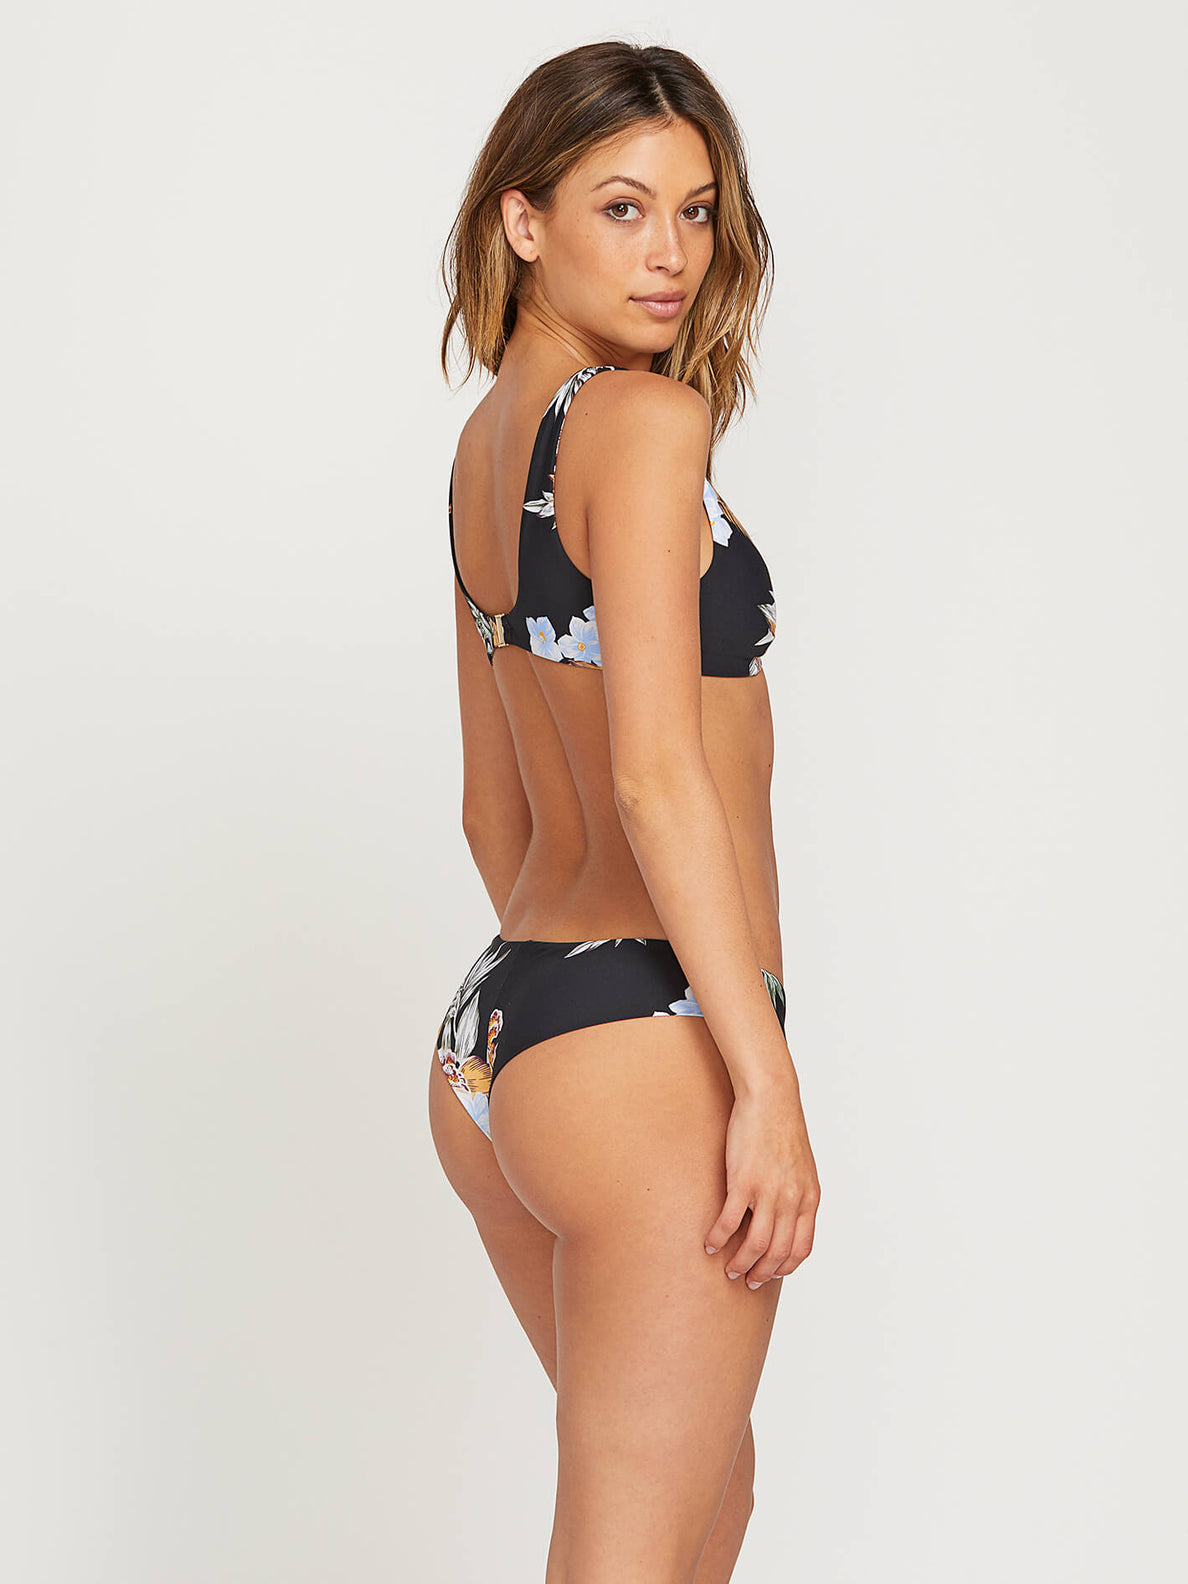 Tropakill Cheekini Bottoms In Black, Front View